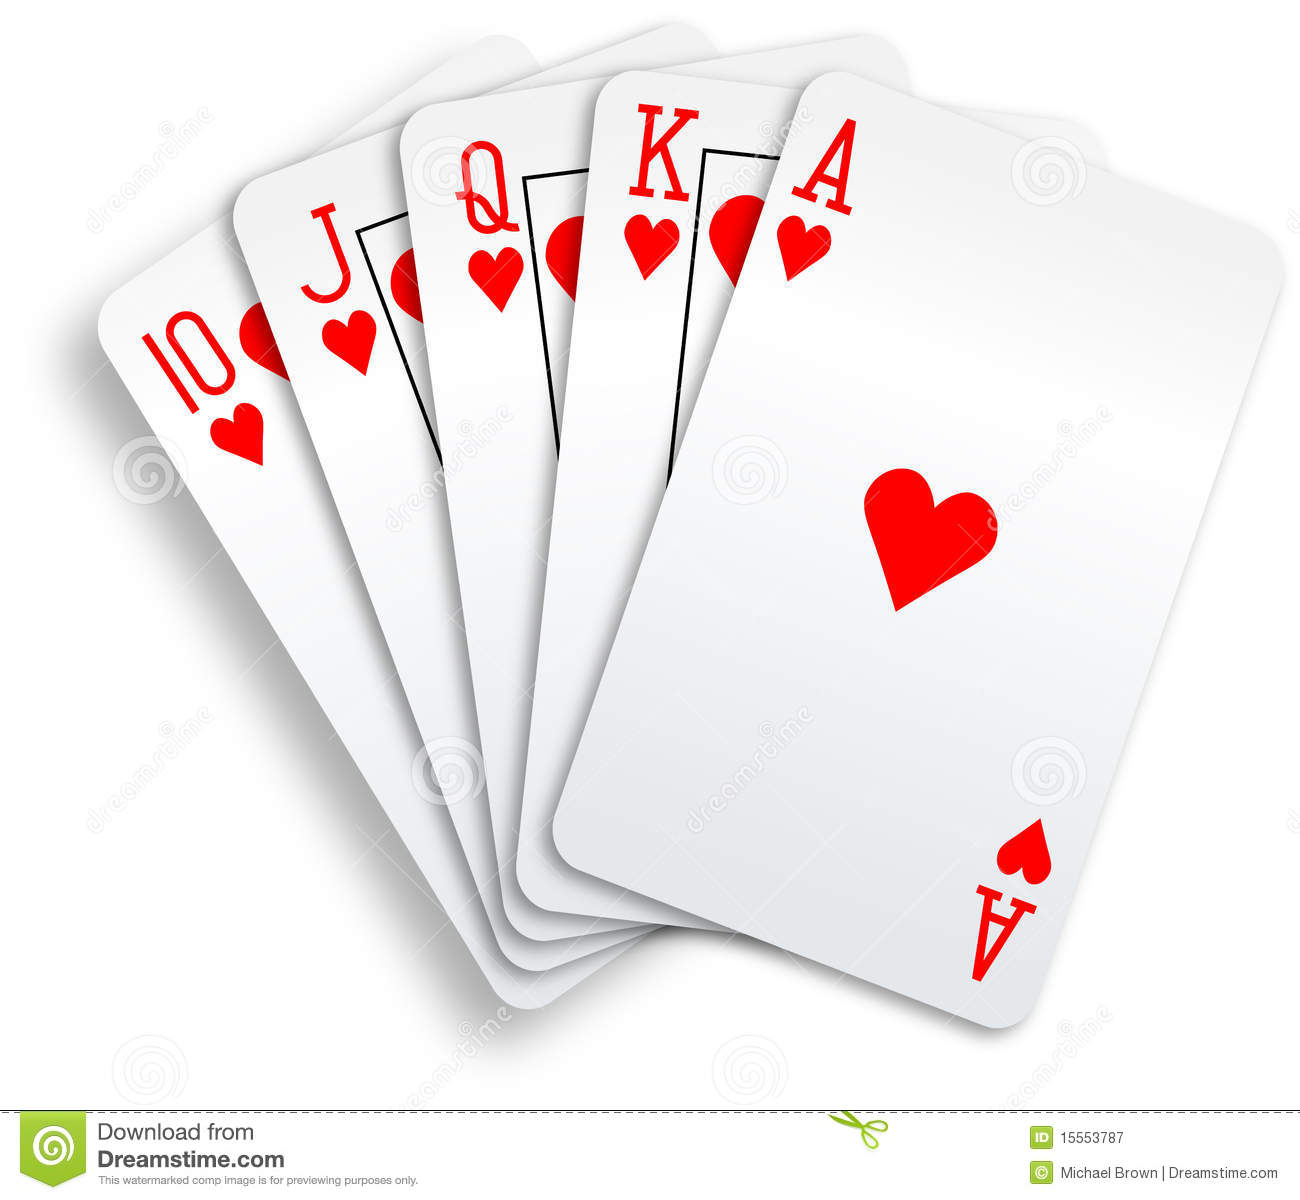 Game of hearts clipart png transparent download Hearts Royal Flush Playing Cards Poker Hand Royalty Free Stock ... png transparent download